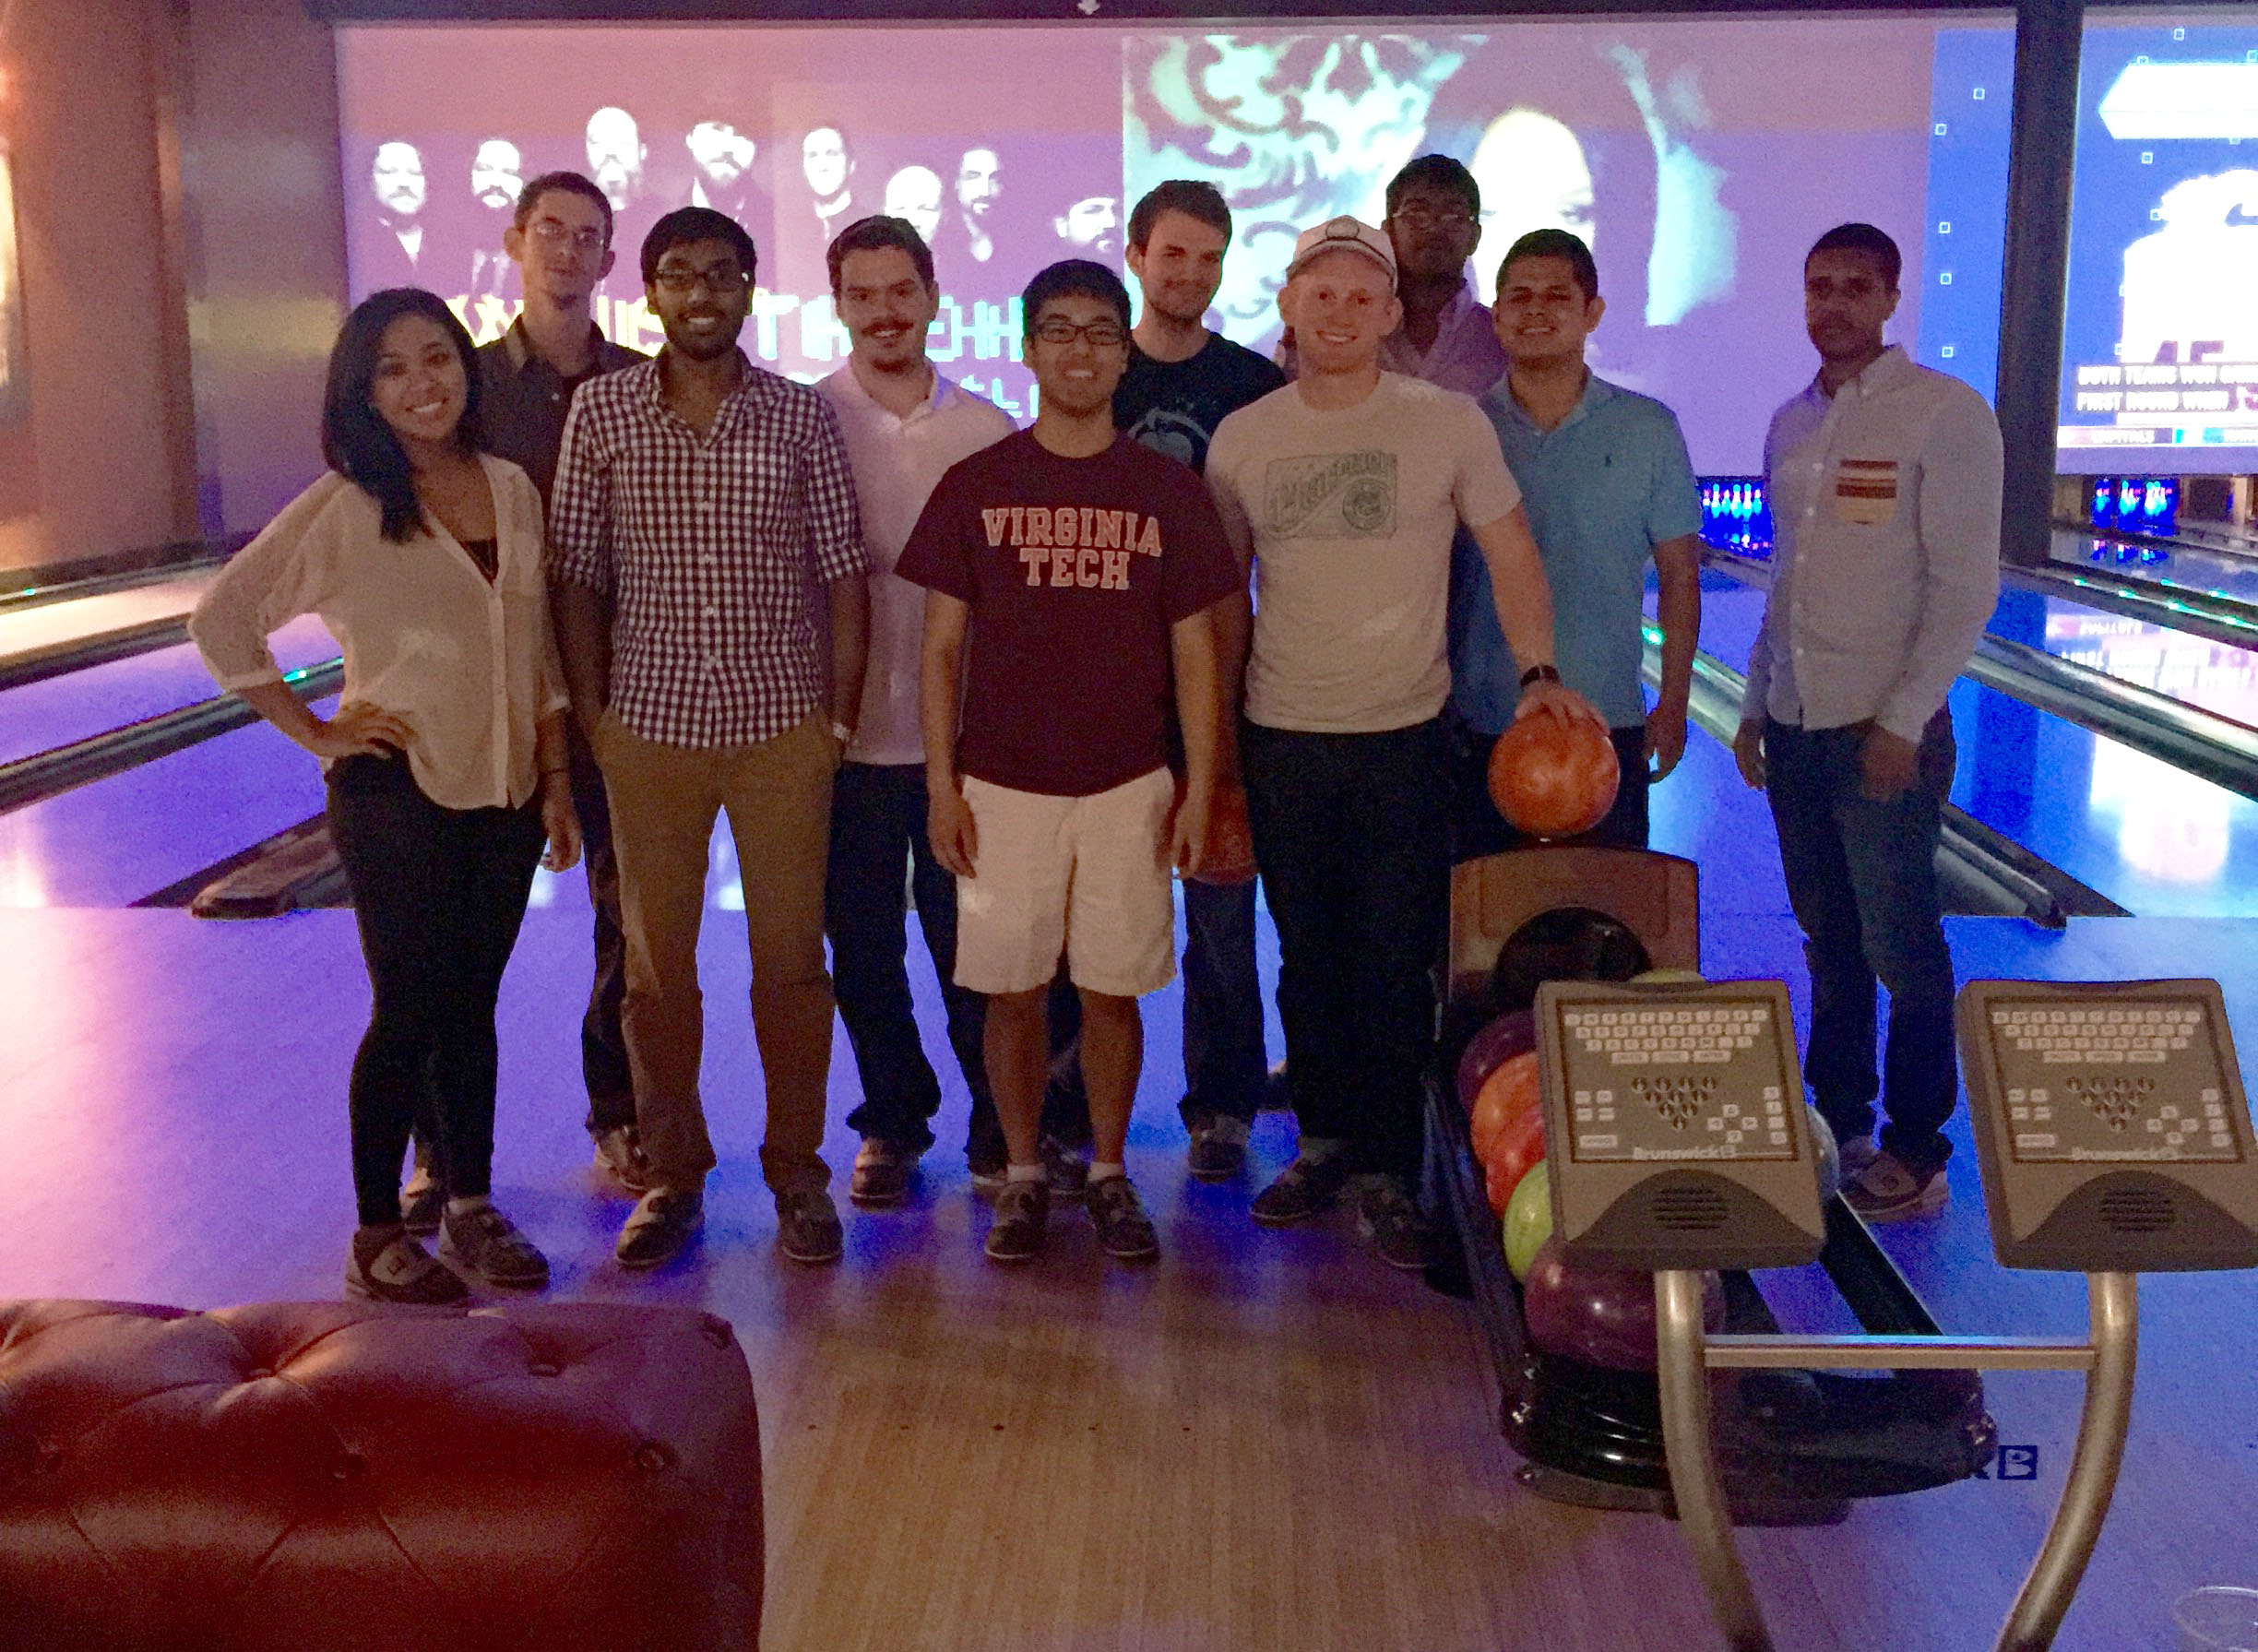 Students in a recent NetApp Transitions program participate in a team building activity at a Blacksburg bowling alley.